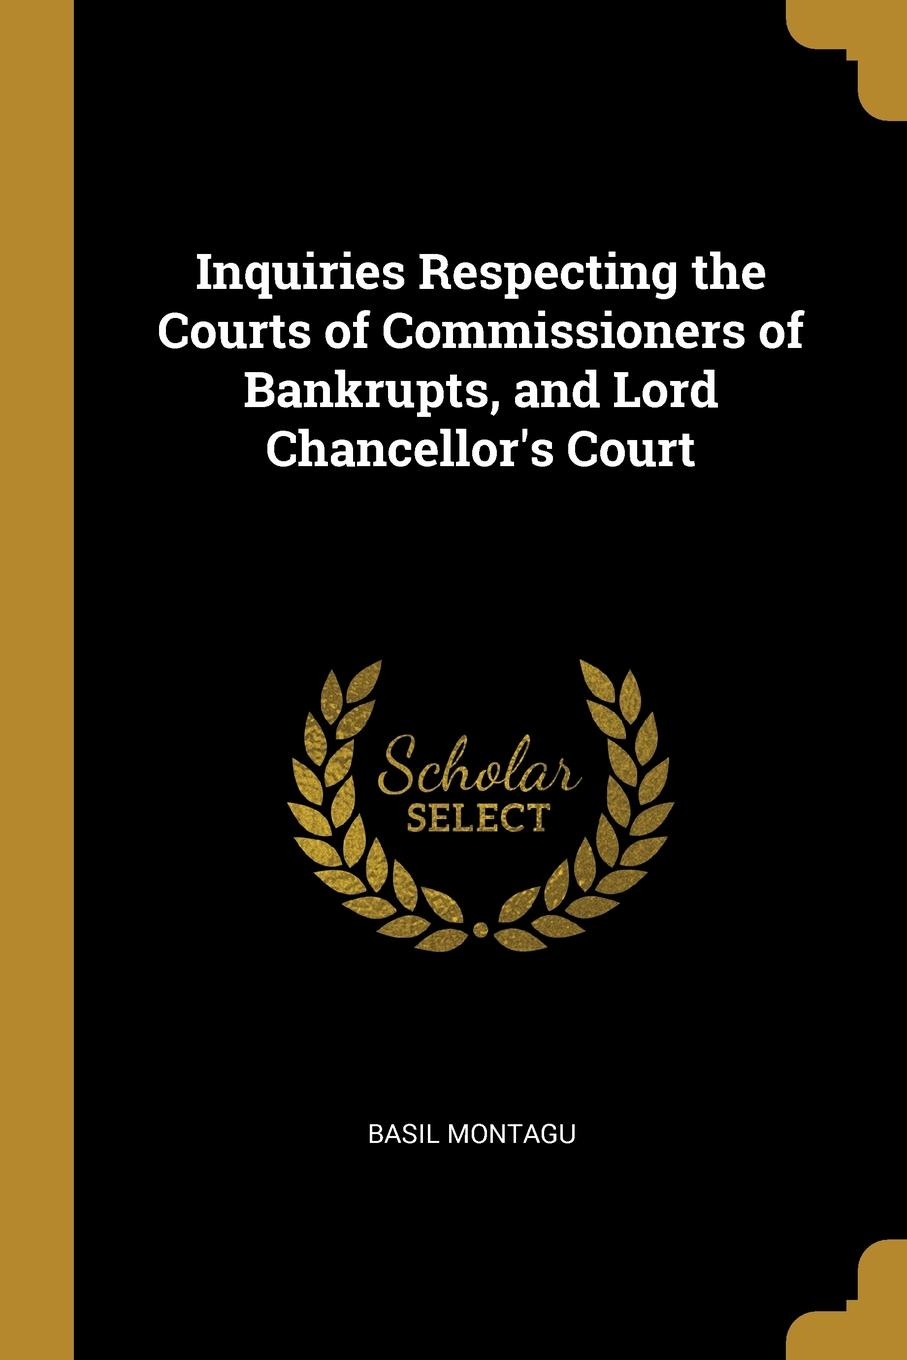 Basil Montagu. Inquiries Respecting the Courts of Commissioners of Bankrupts, and Lord Chancellor.s Court